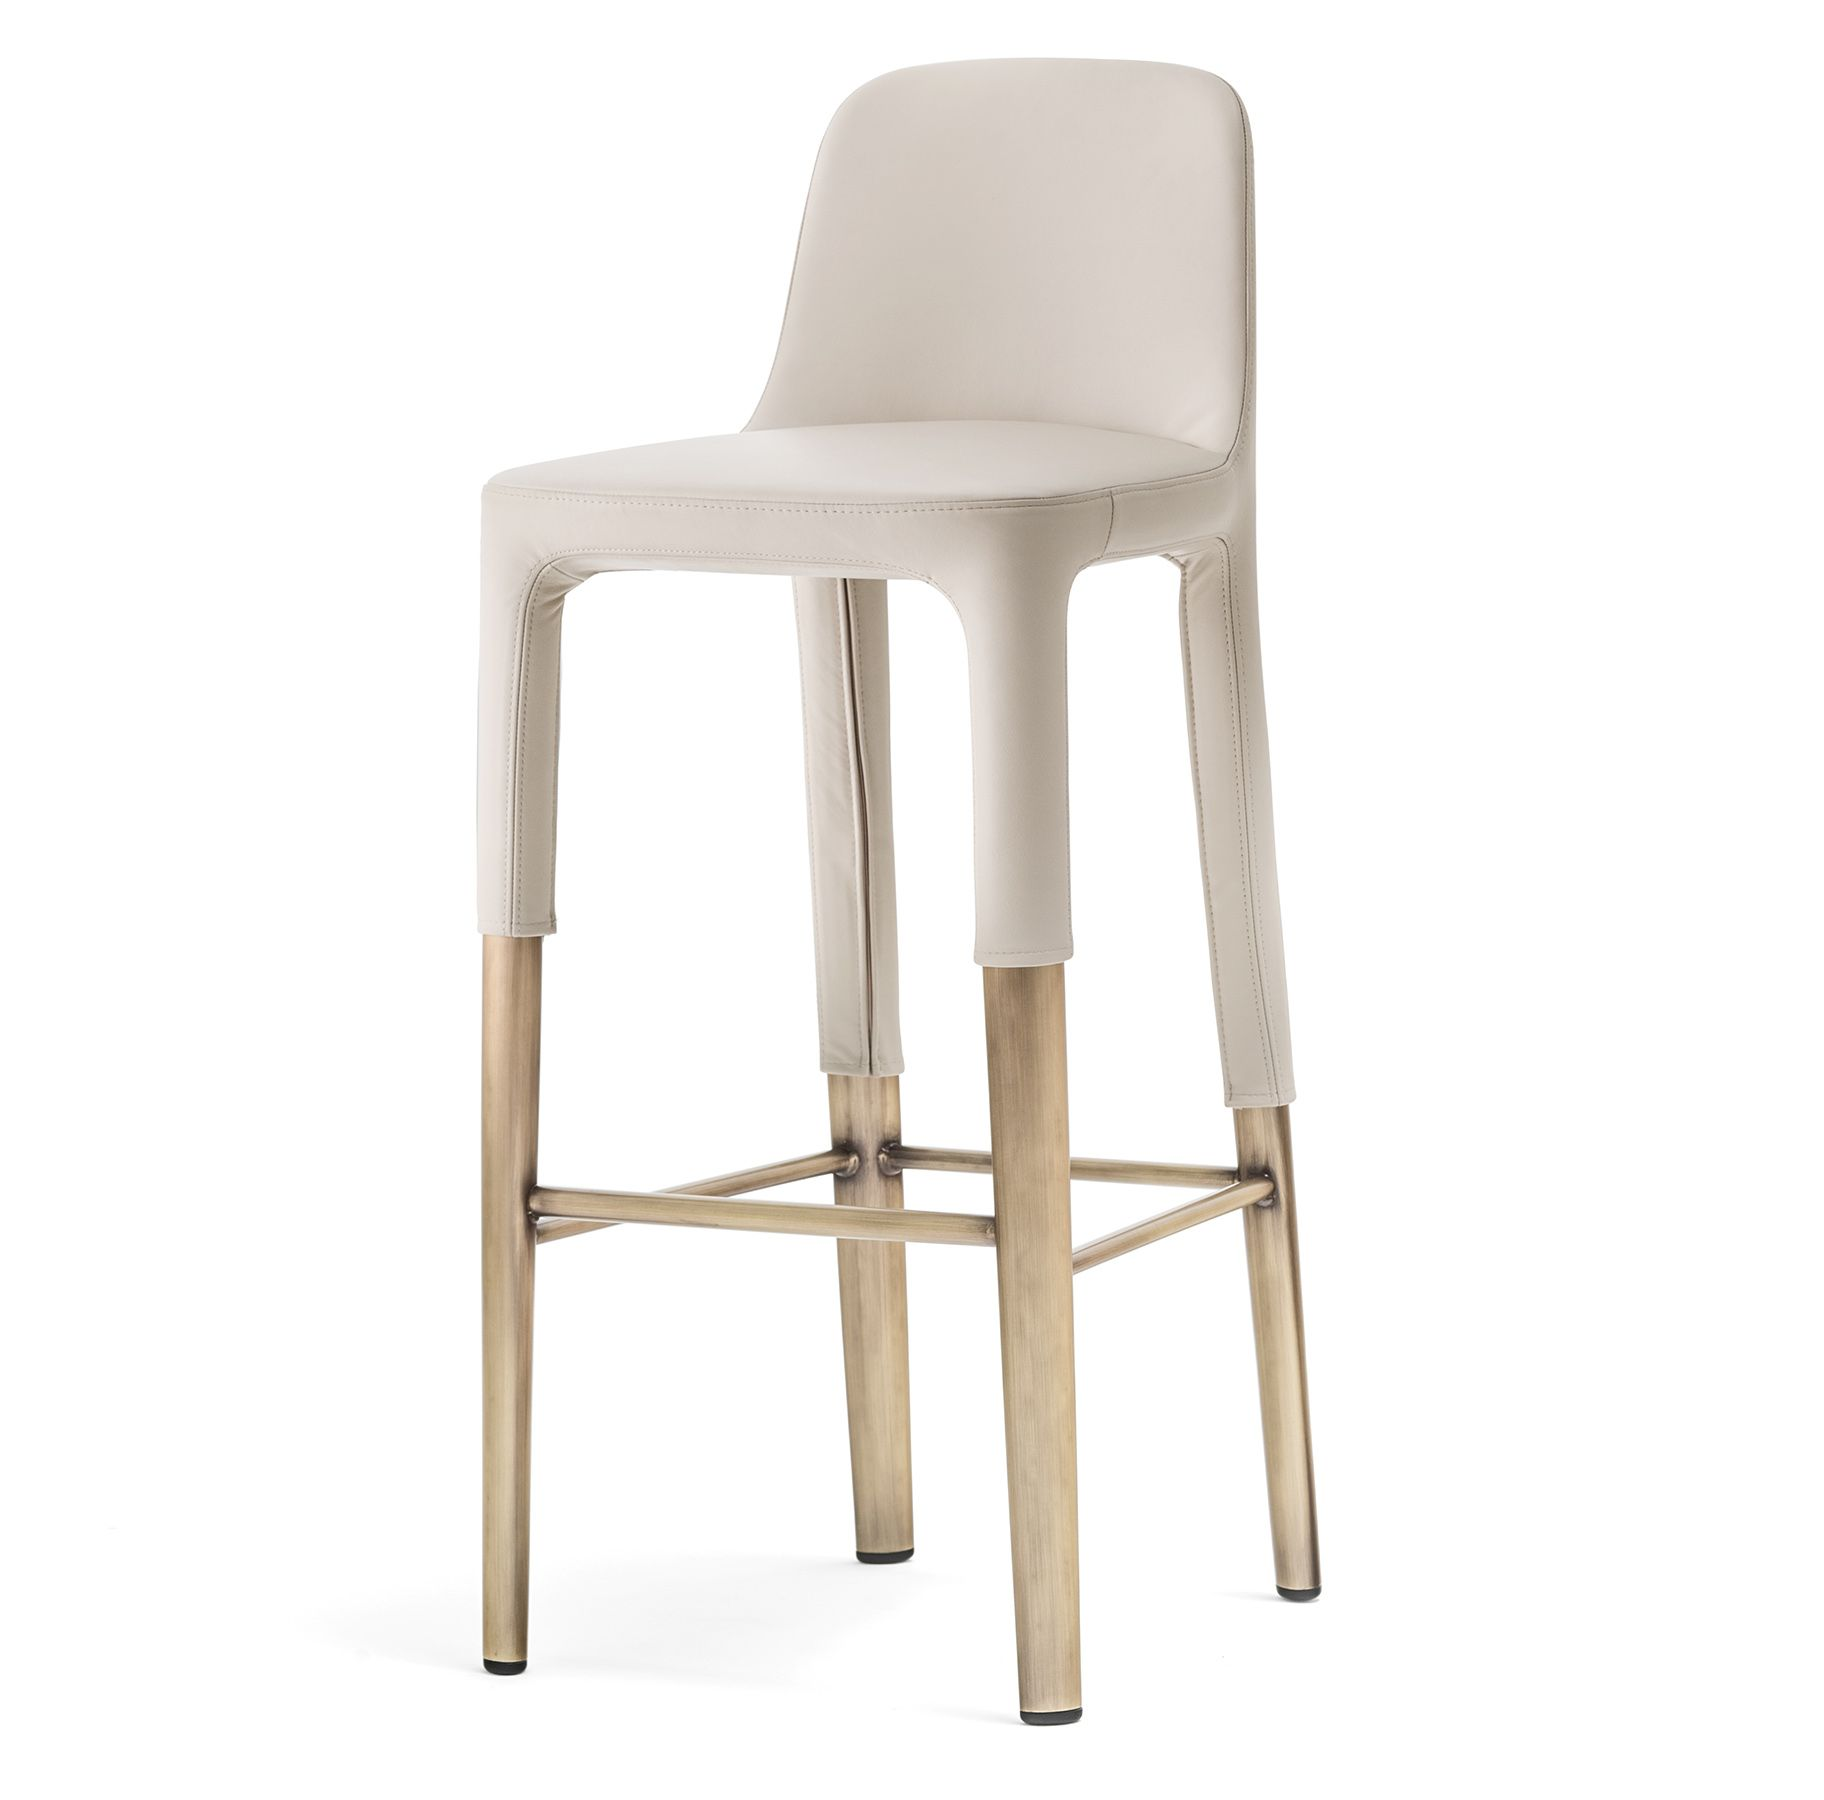 New Stools By Pedrali Ester 698 Barstool Is The Natural